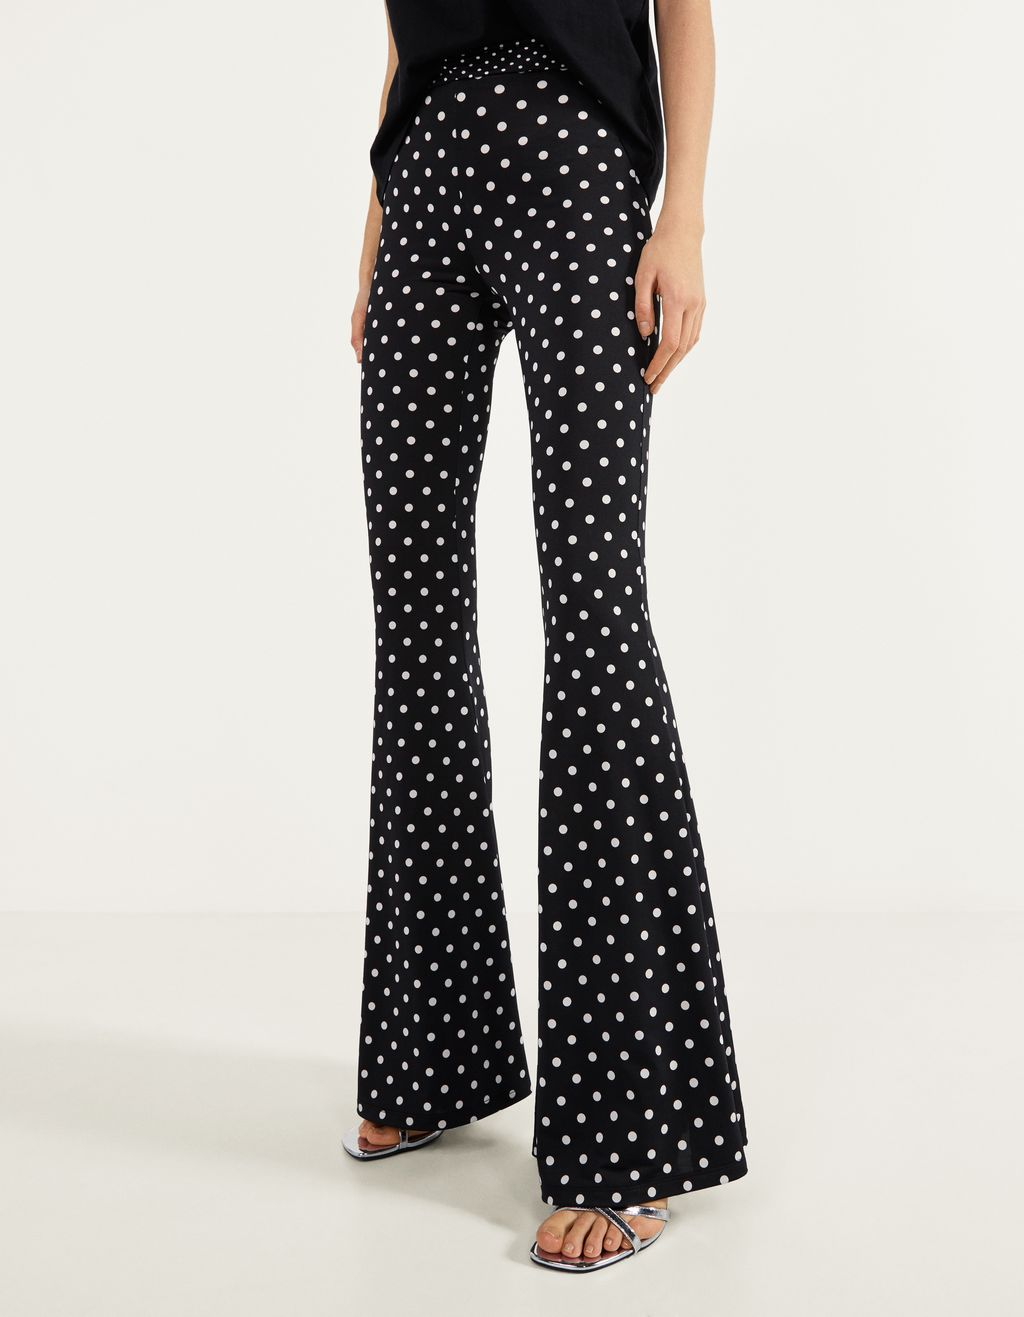 Polka dot flare fit trousers